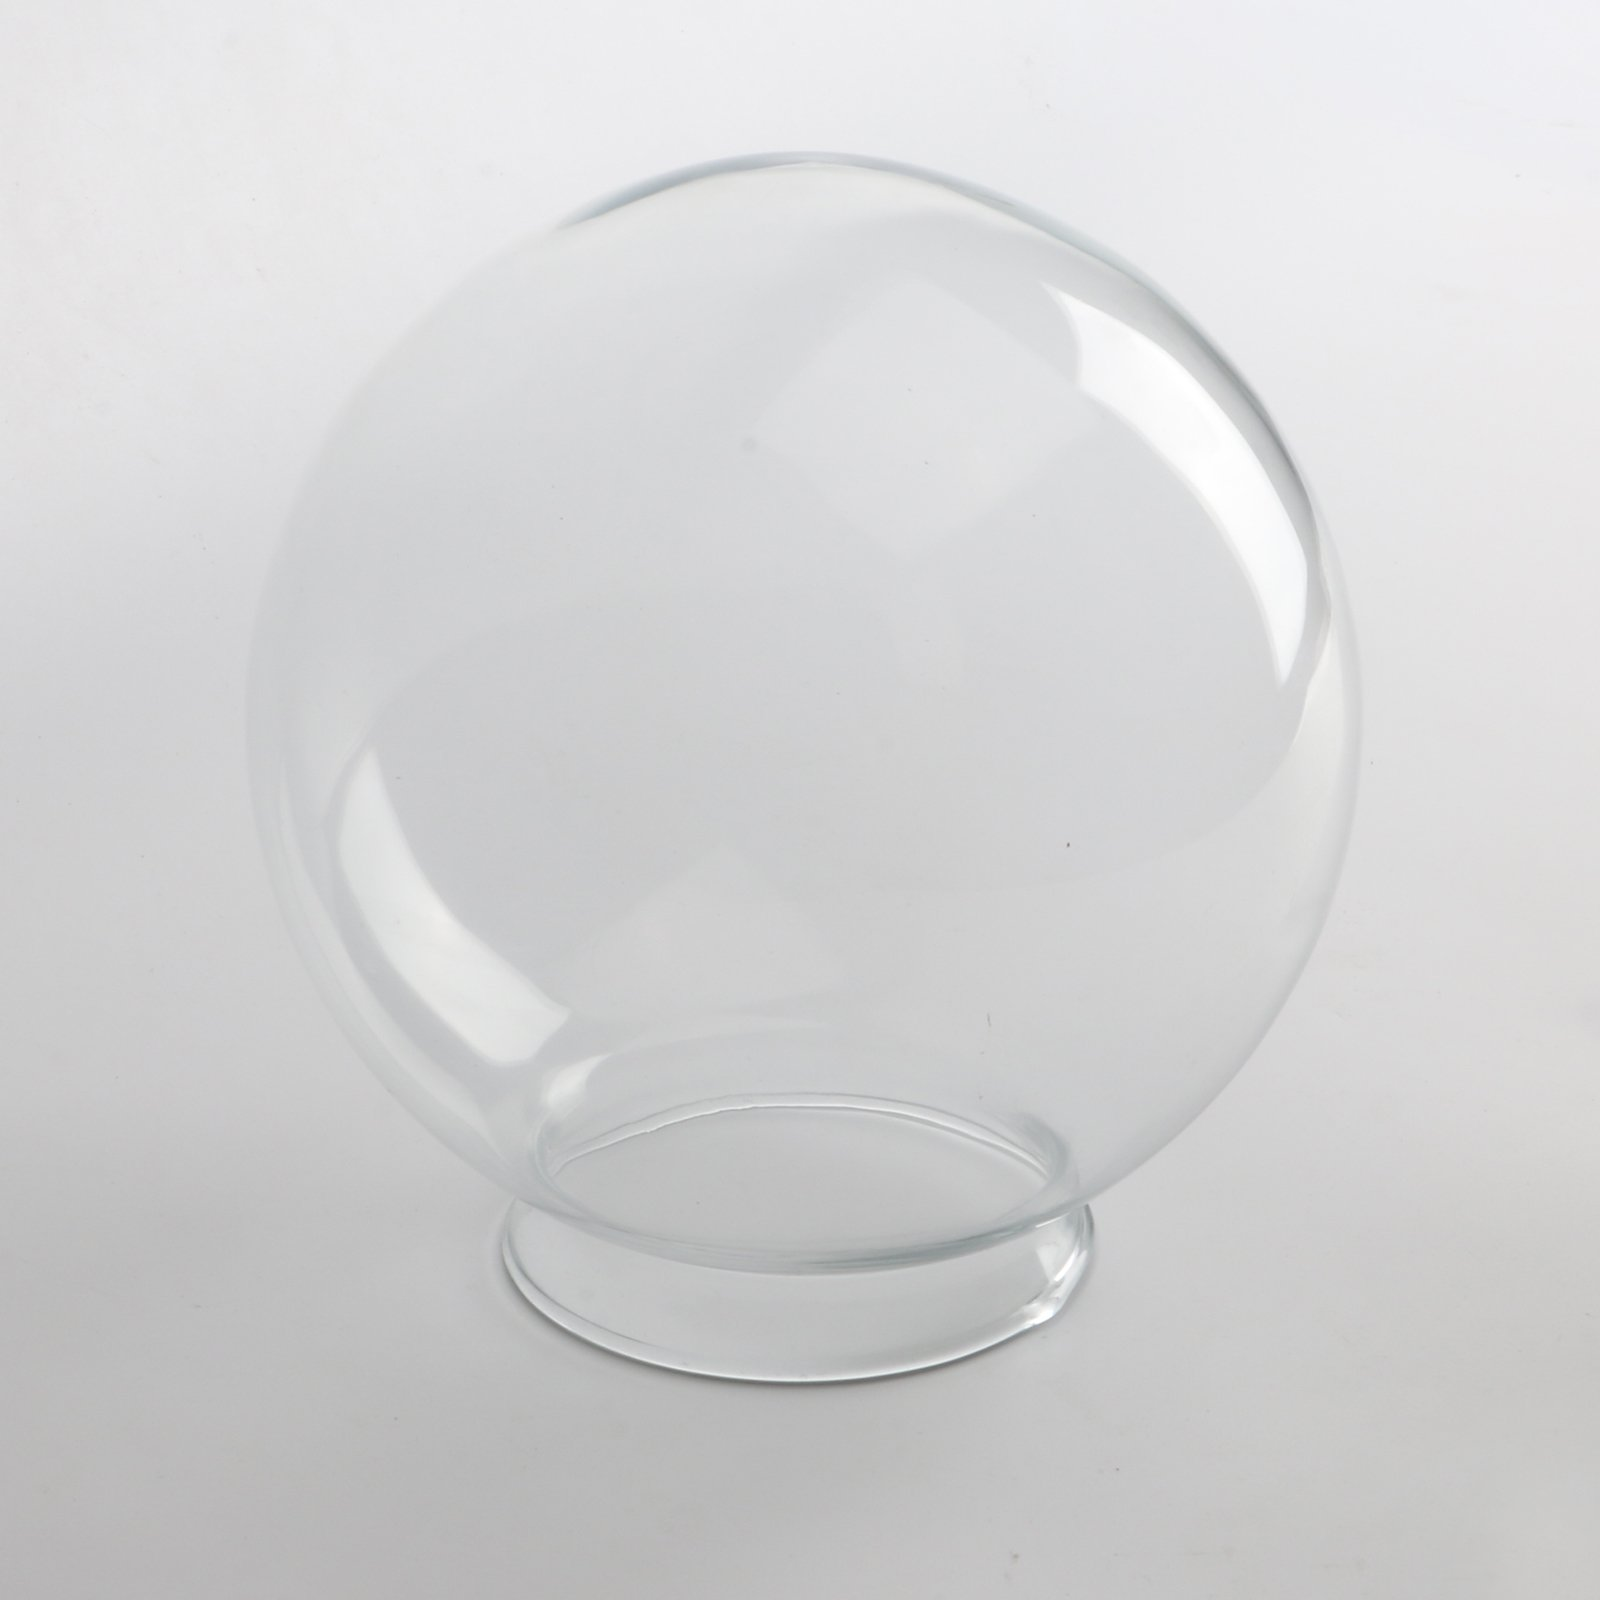 Details about permo lighting fixture replacement 5 9 round globe clear glass shade